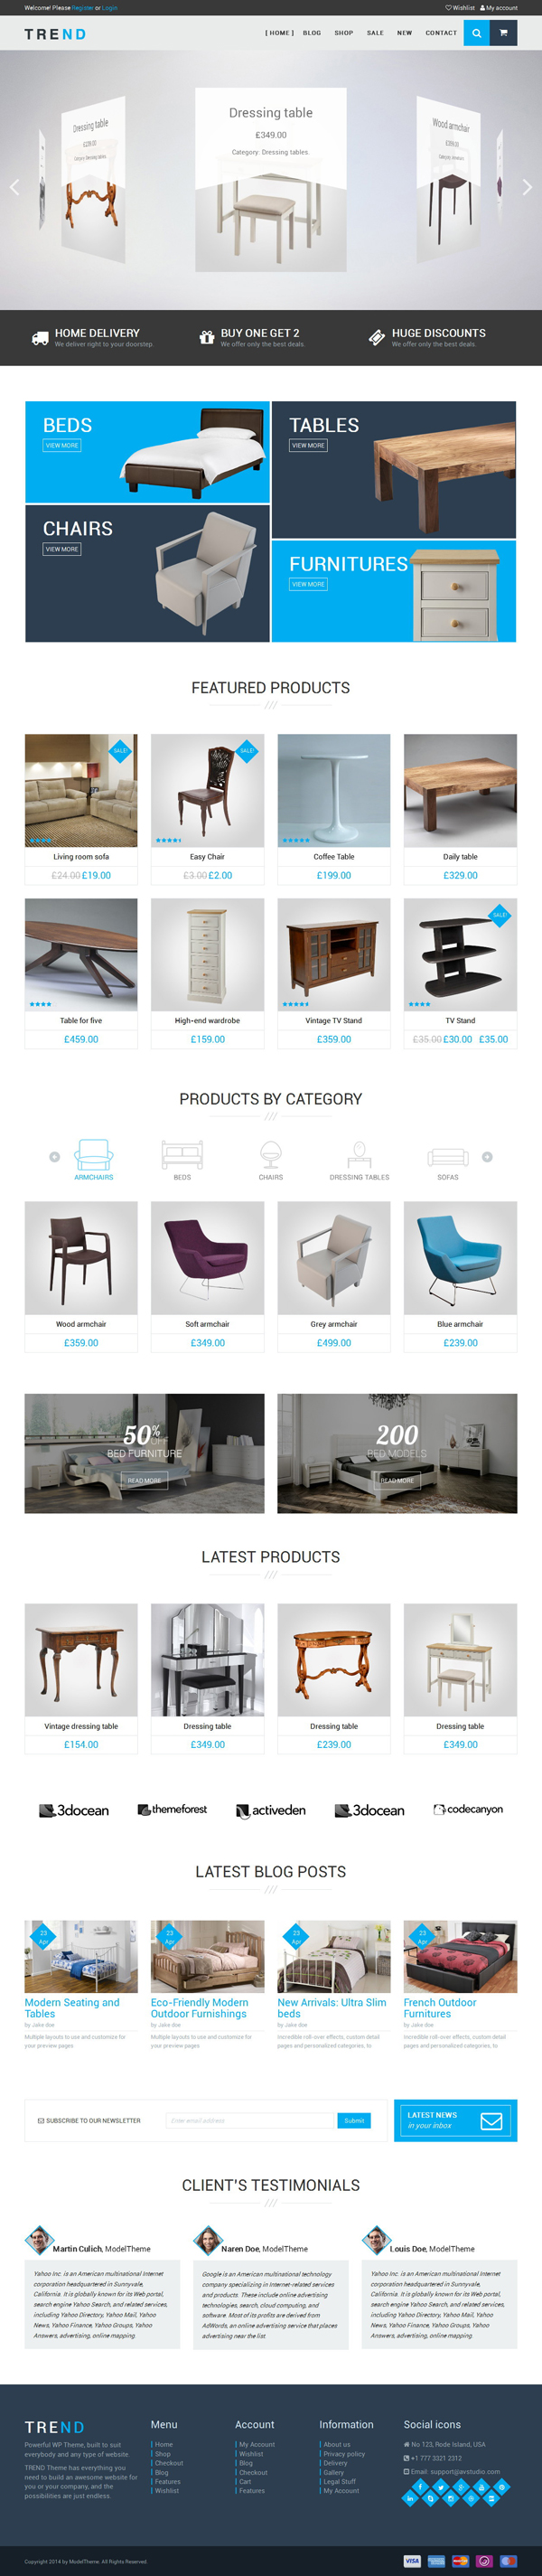 TREND - WooCommerce WordPress Theme